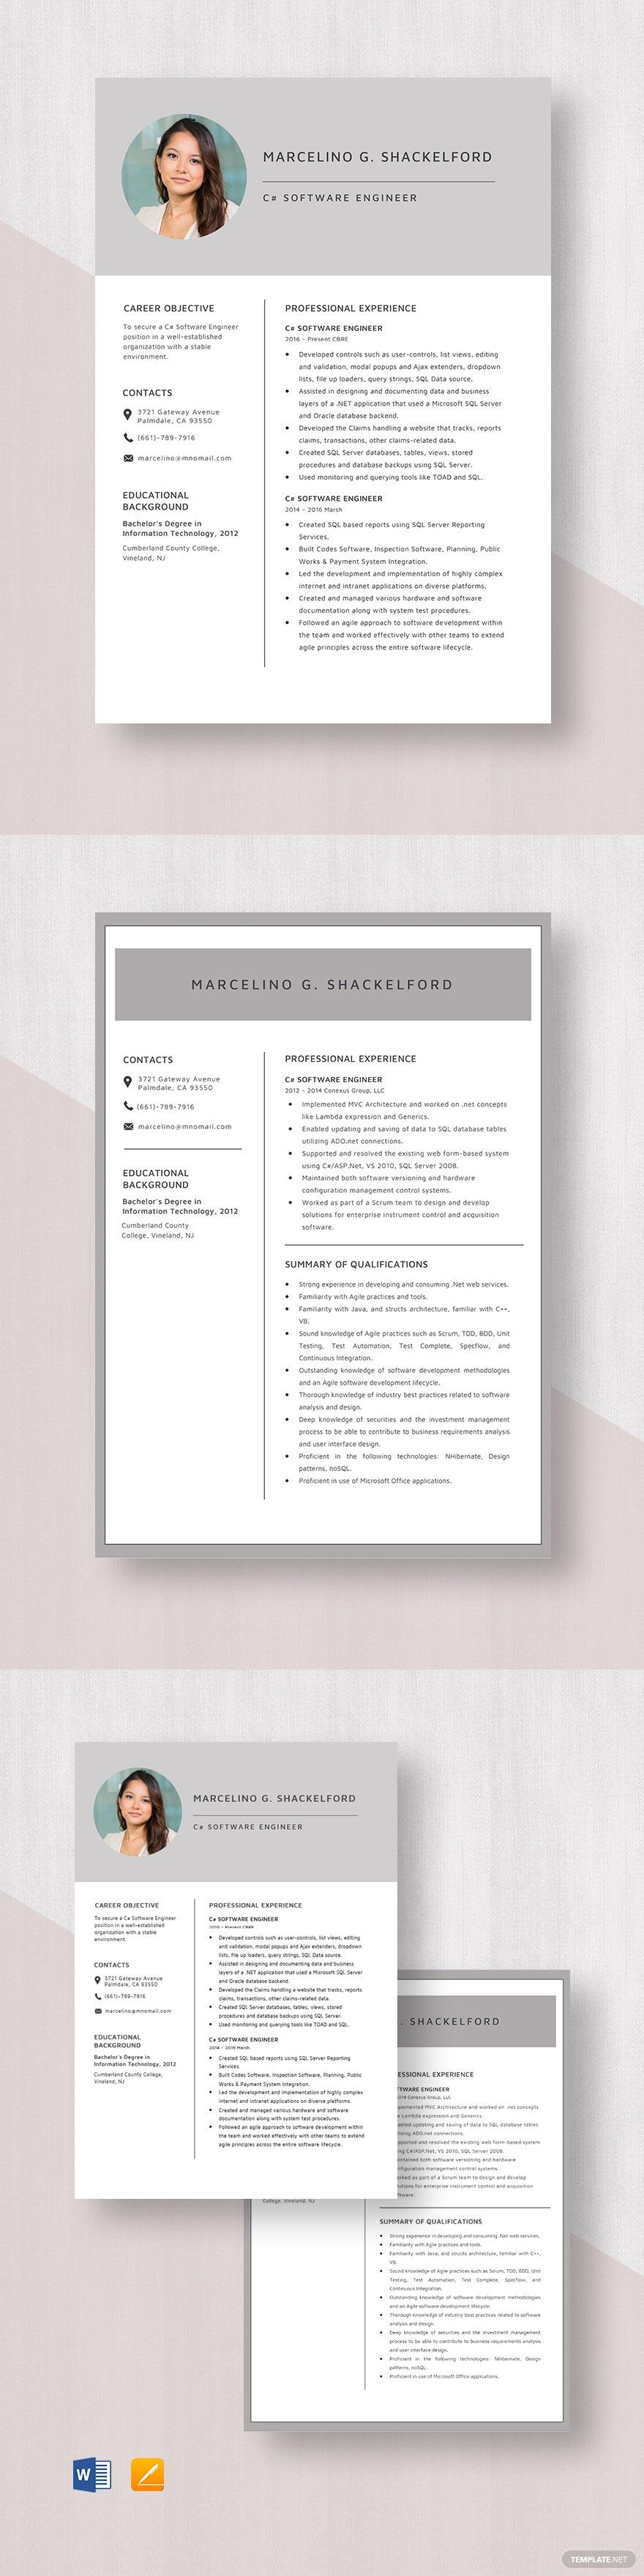 C software engineer resume template in 2020 software